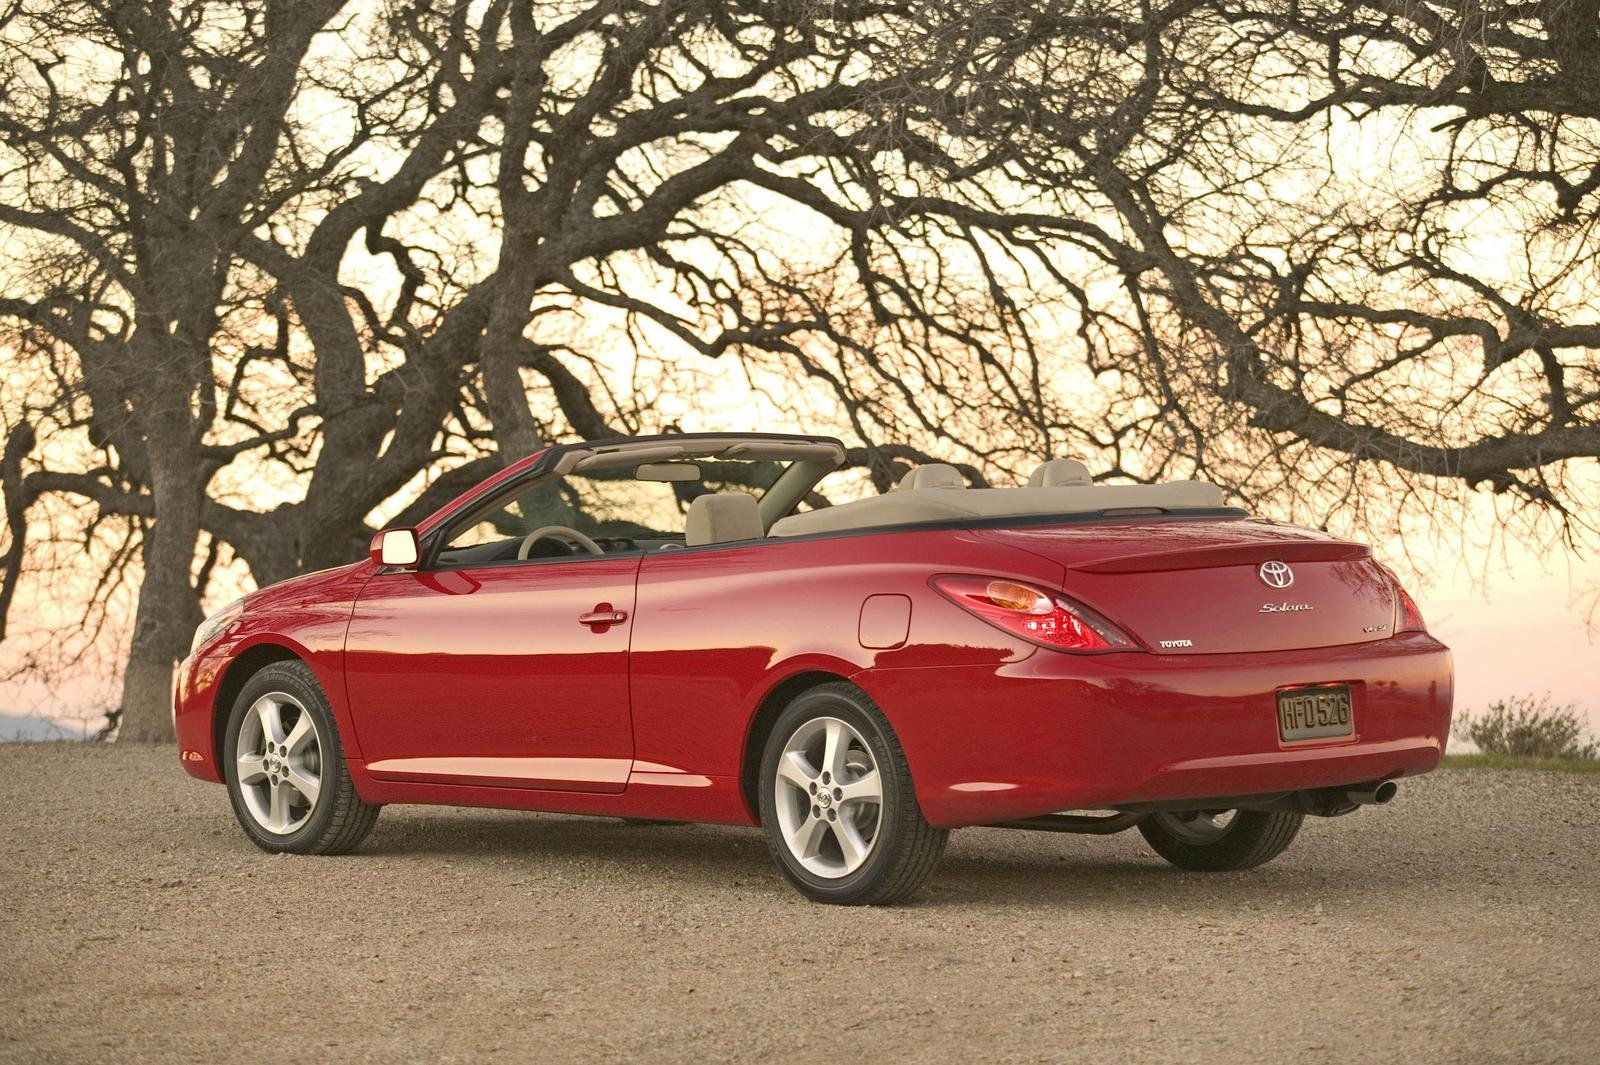 2006 toyota camry solara picture 94111 car review top speed. Black Bedroom Furniture Sets. Home Design Ideas